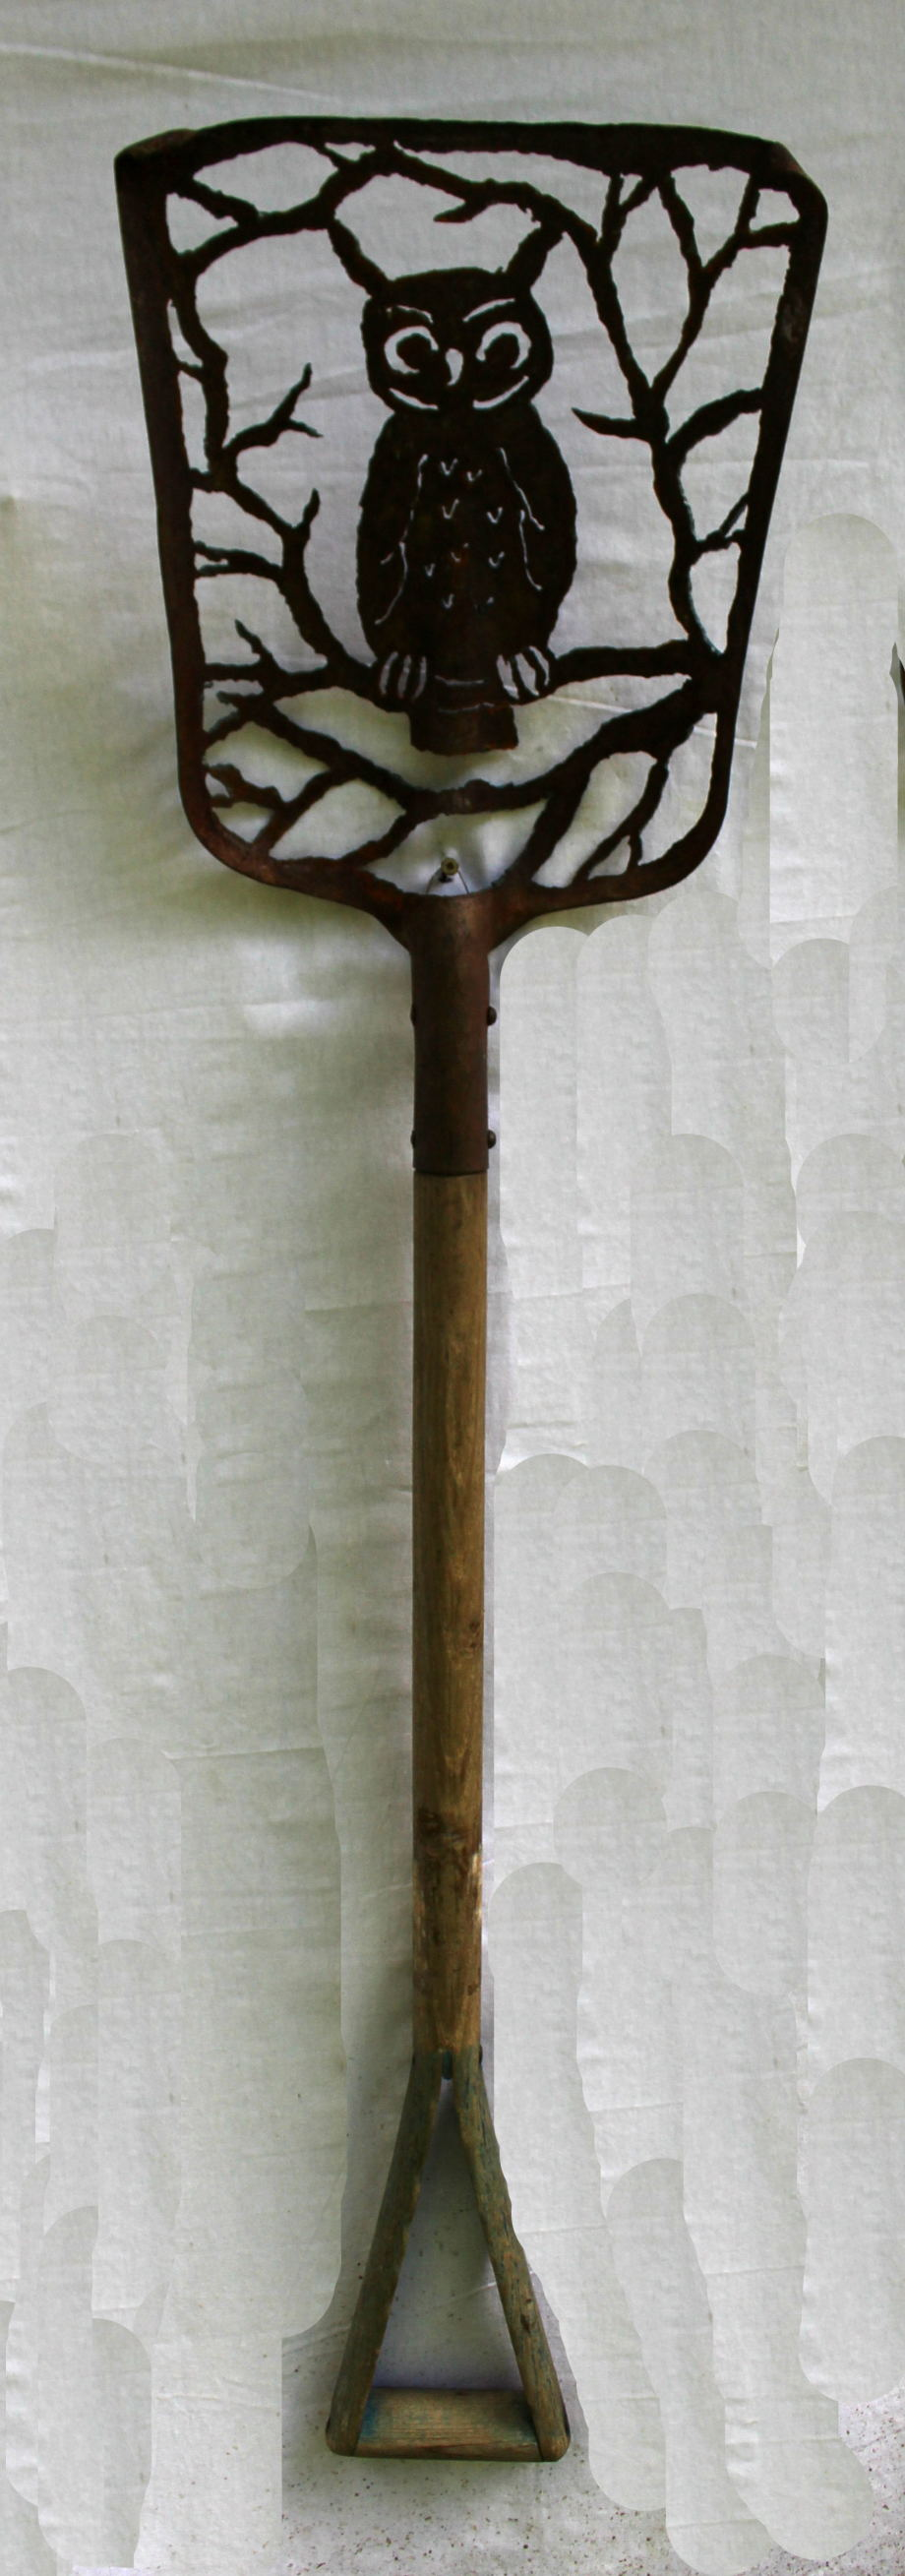 Horned Owl Tree shovel 2